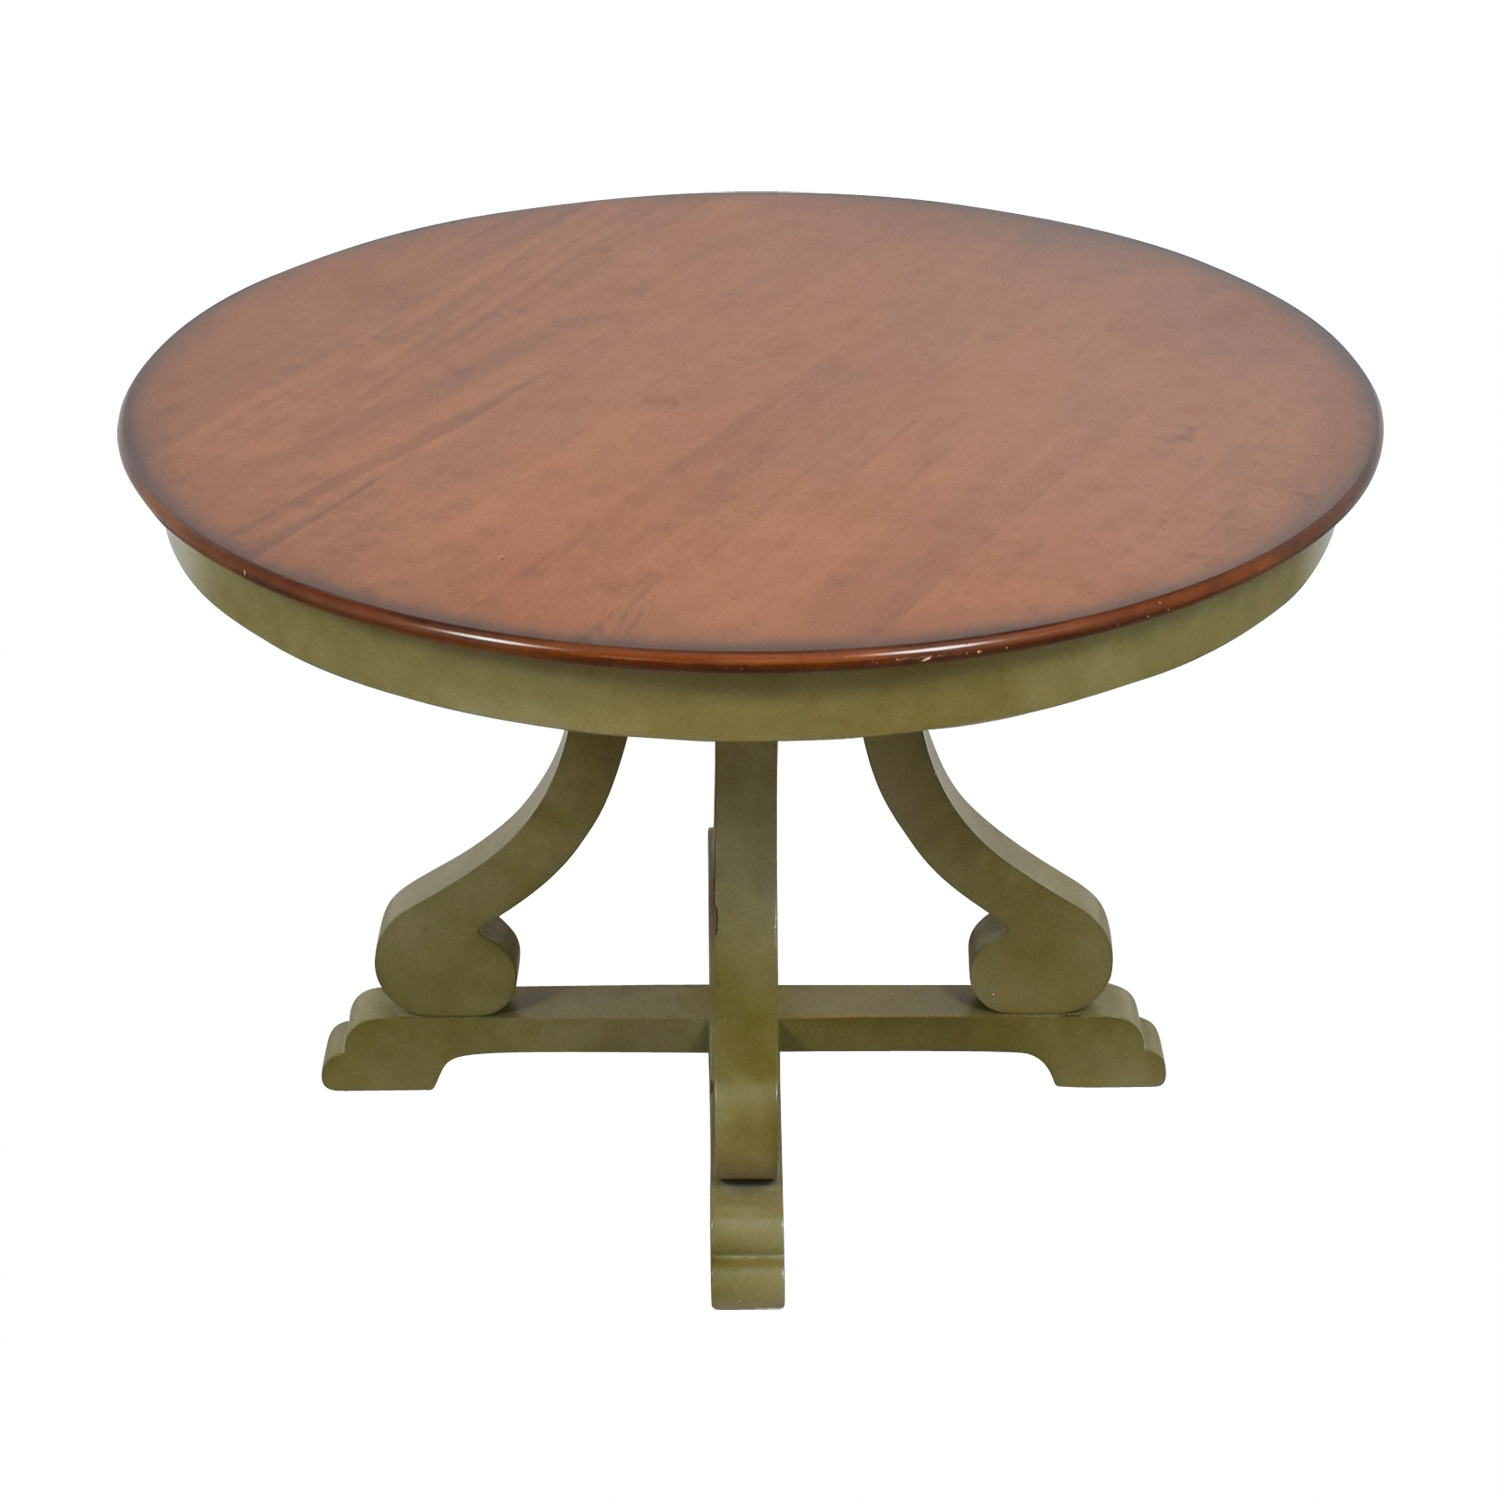 shop Pier 1 Imports Green and Wood Round Dining Table Pier 1 Imports Dinner Tables